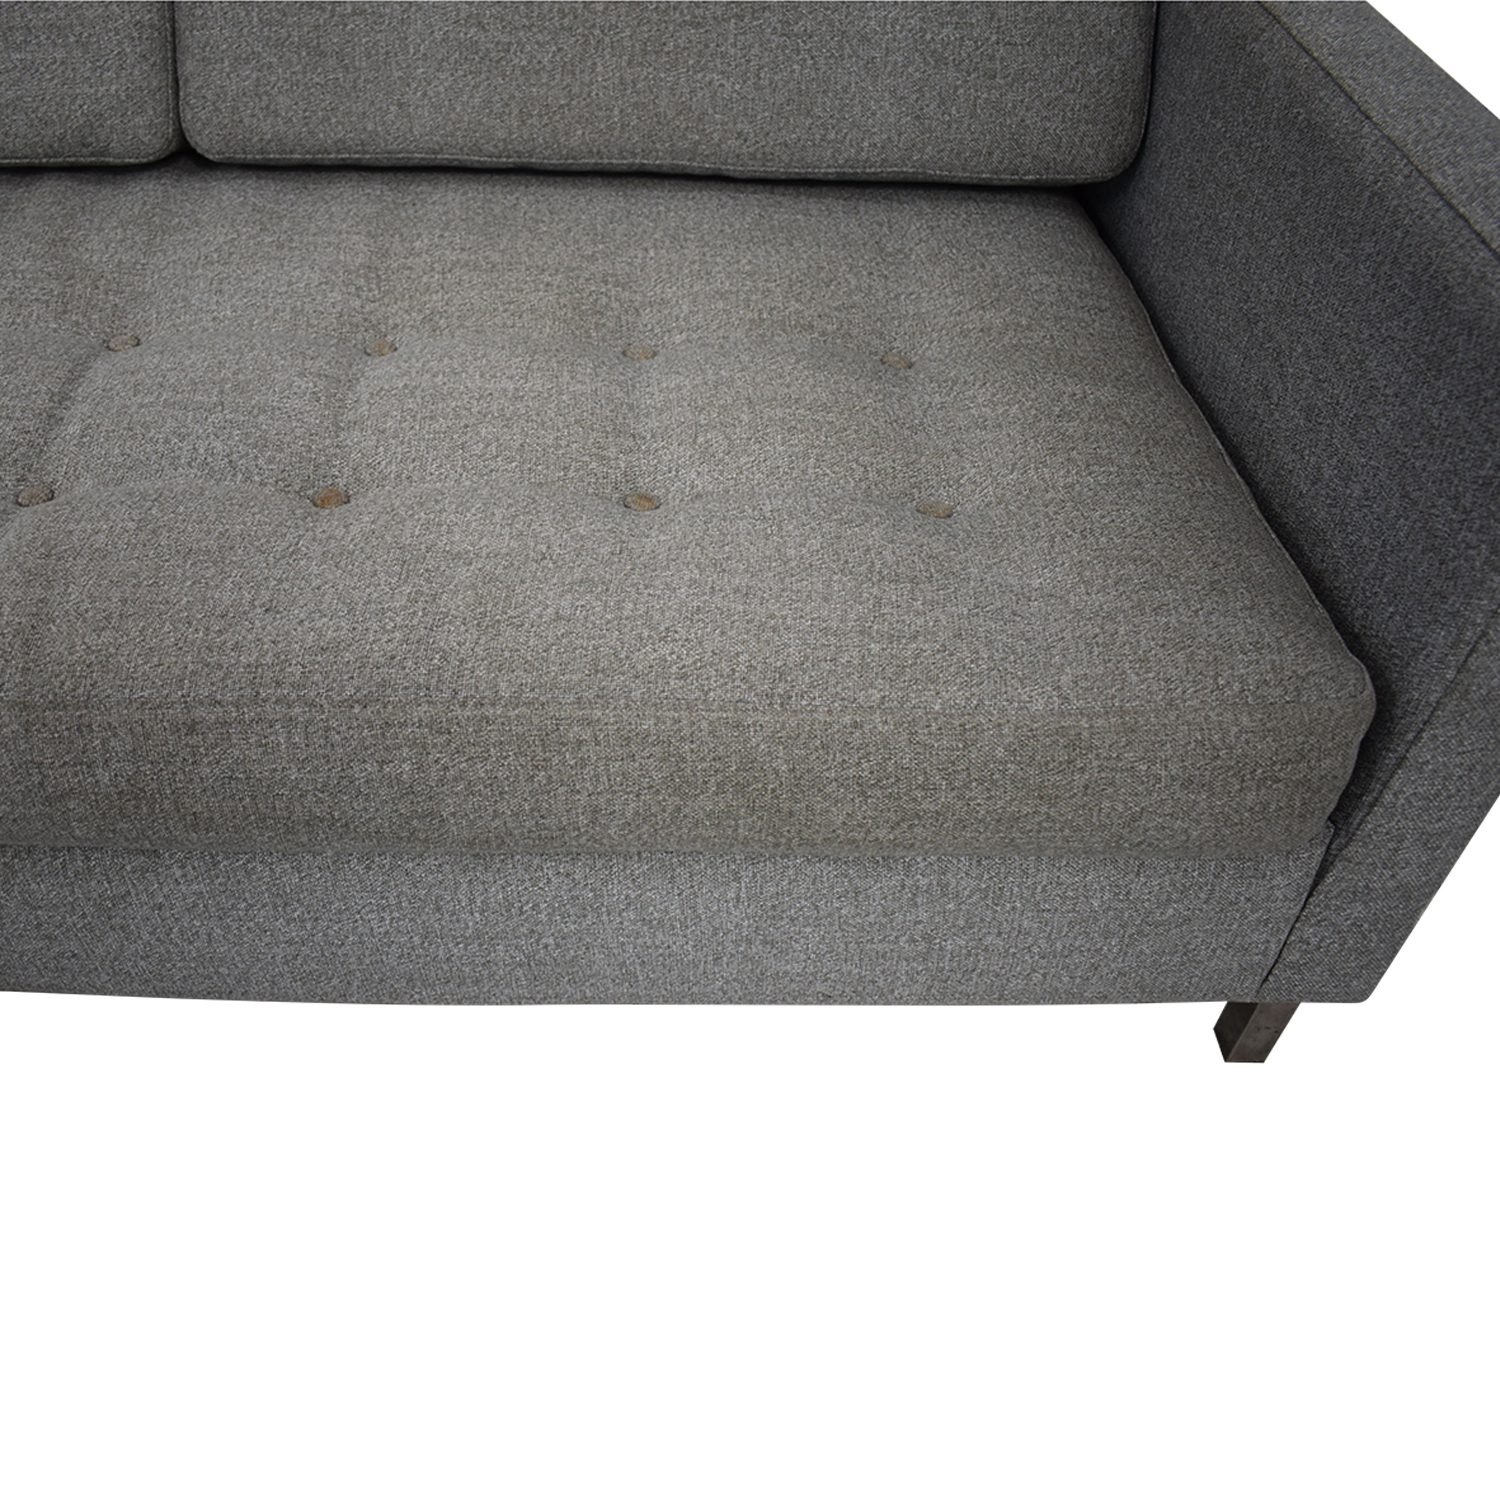 CB2 CB2 Ditto II Sectional Sofa Sofas